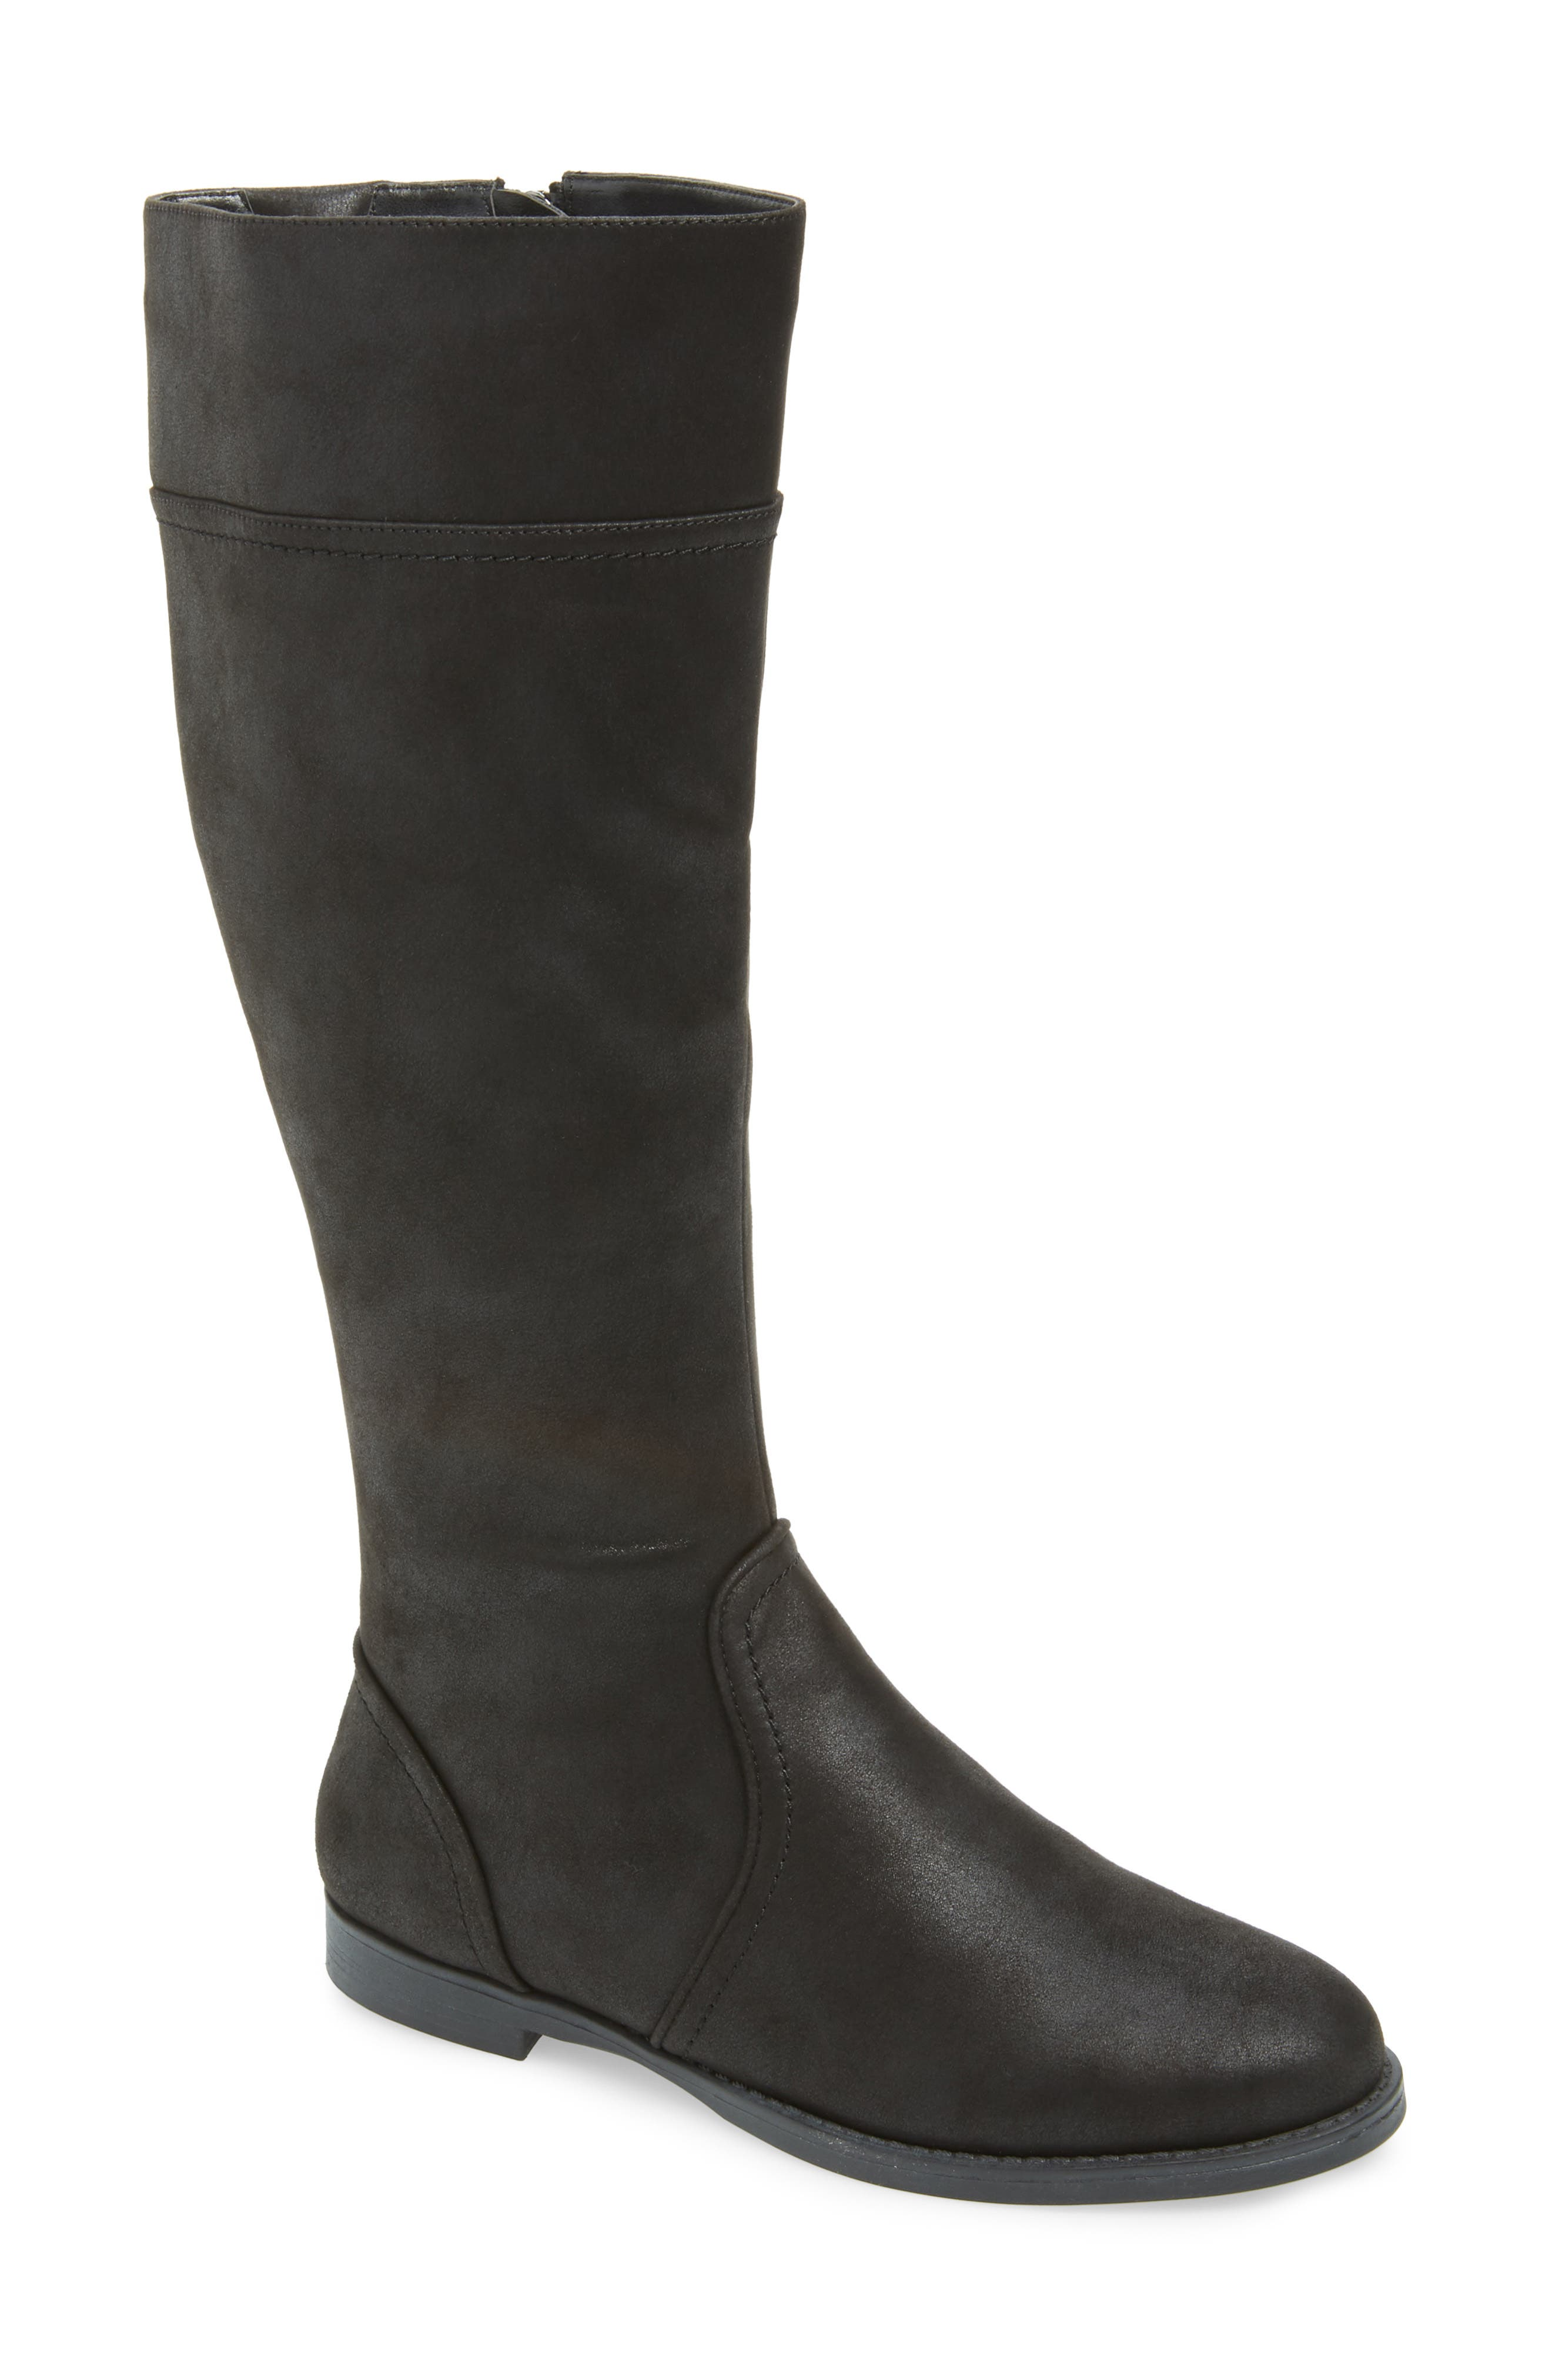 BELLA VITA, Rebecca II Knee High Boot, Main thumbnail 1, color, 001